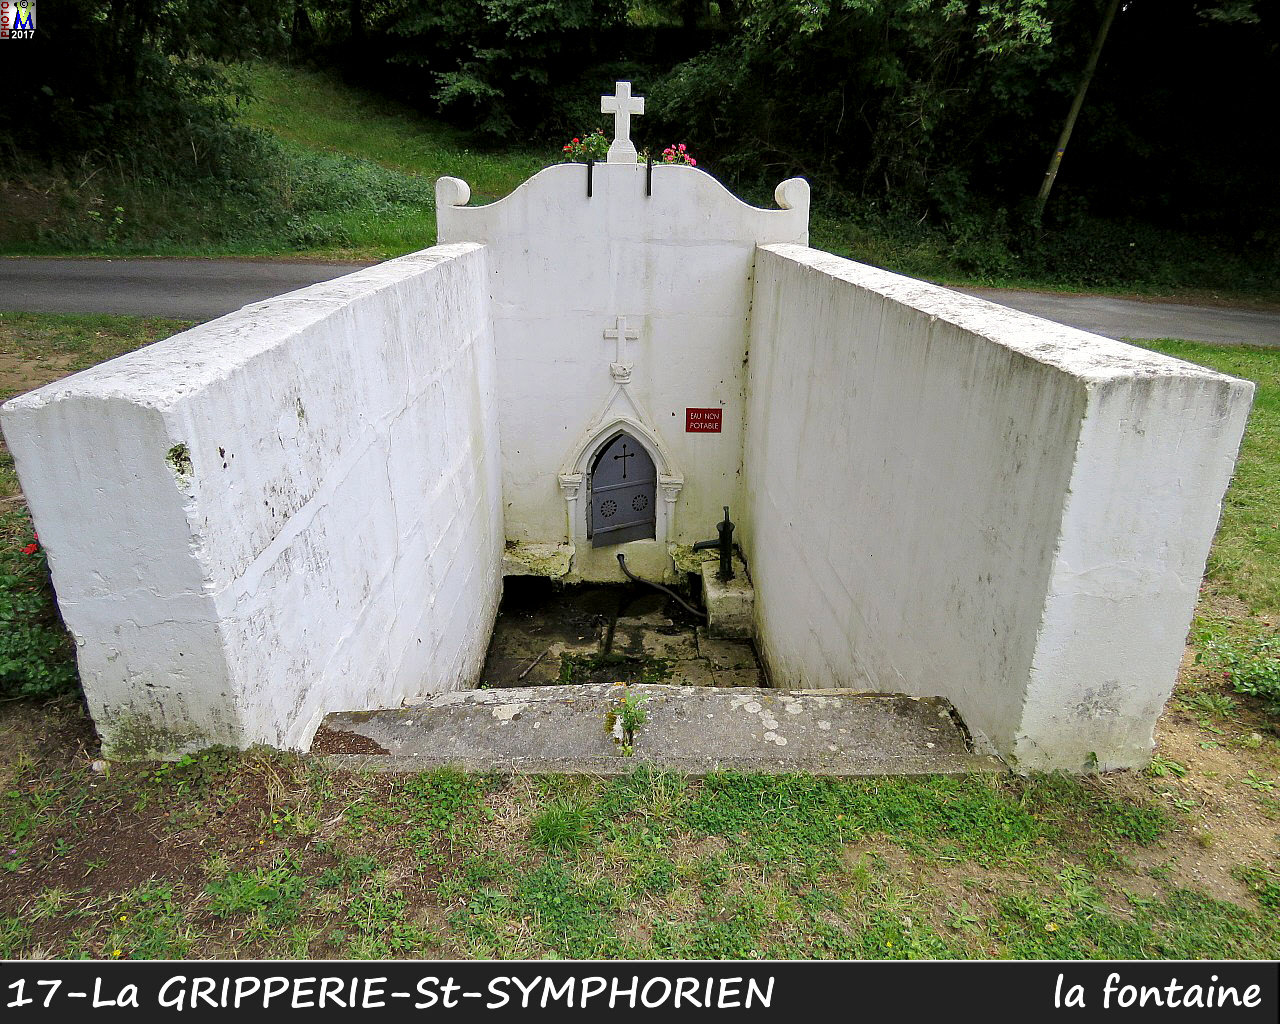 17GRIPPERIE-ST-SYM_fontaine_1000.jpg